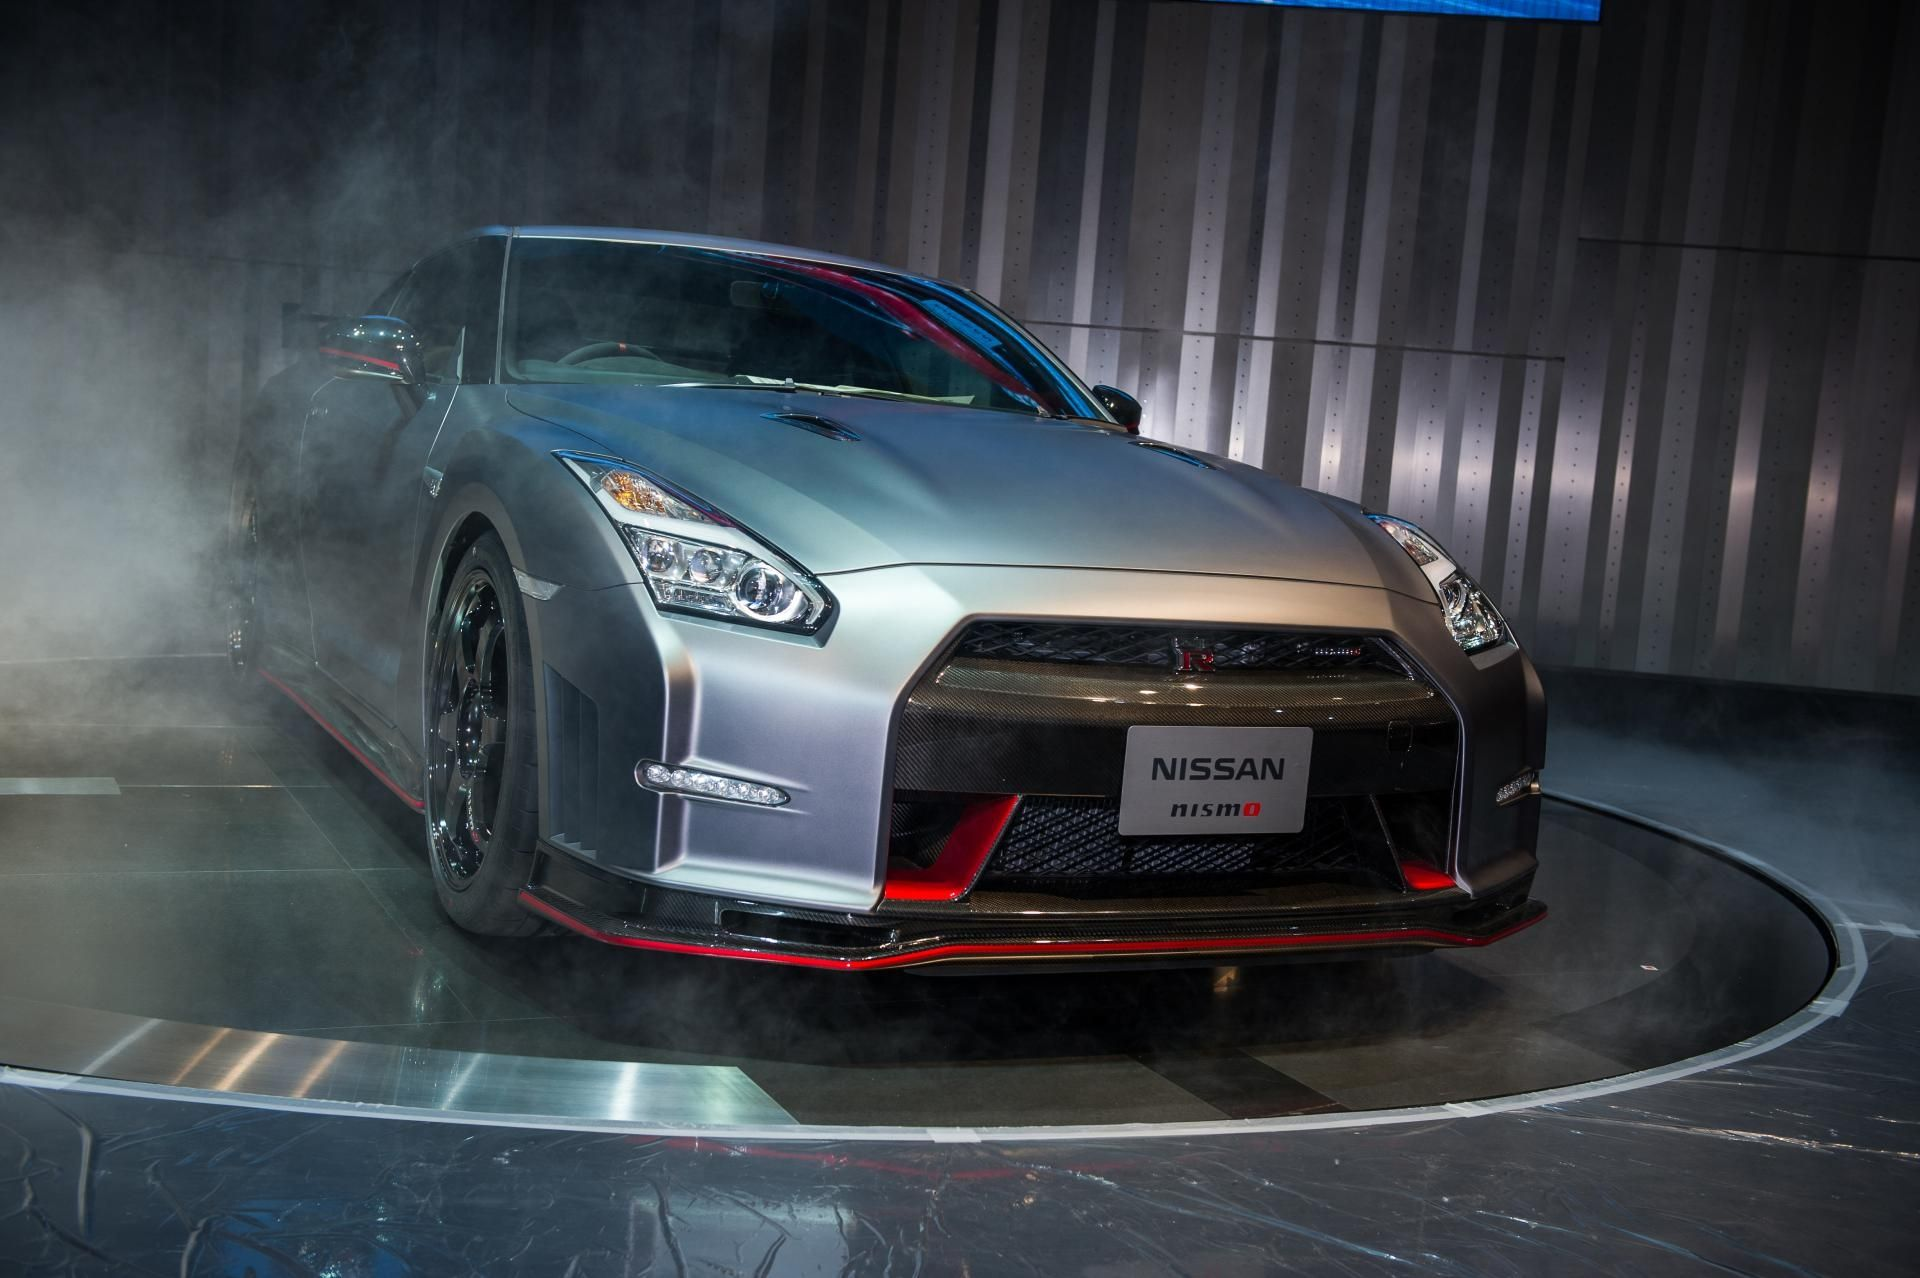 2015 Nissan Gt R Nismo Wallpapers Nissan Gtr Nismo Wallpaper Full Hd Pictures For 2015 Nissan Gt R Nismo Wallpape Nissan Gtr 2015 Nissan Gtr Nissan Gtr R35